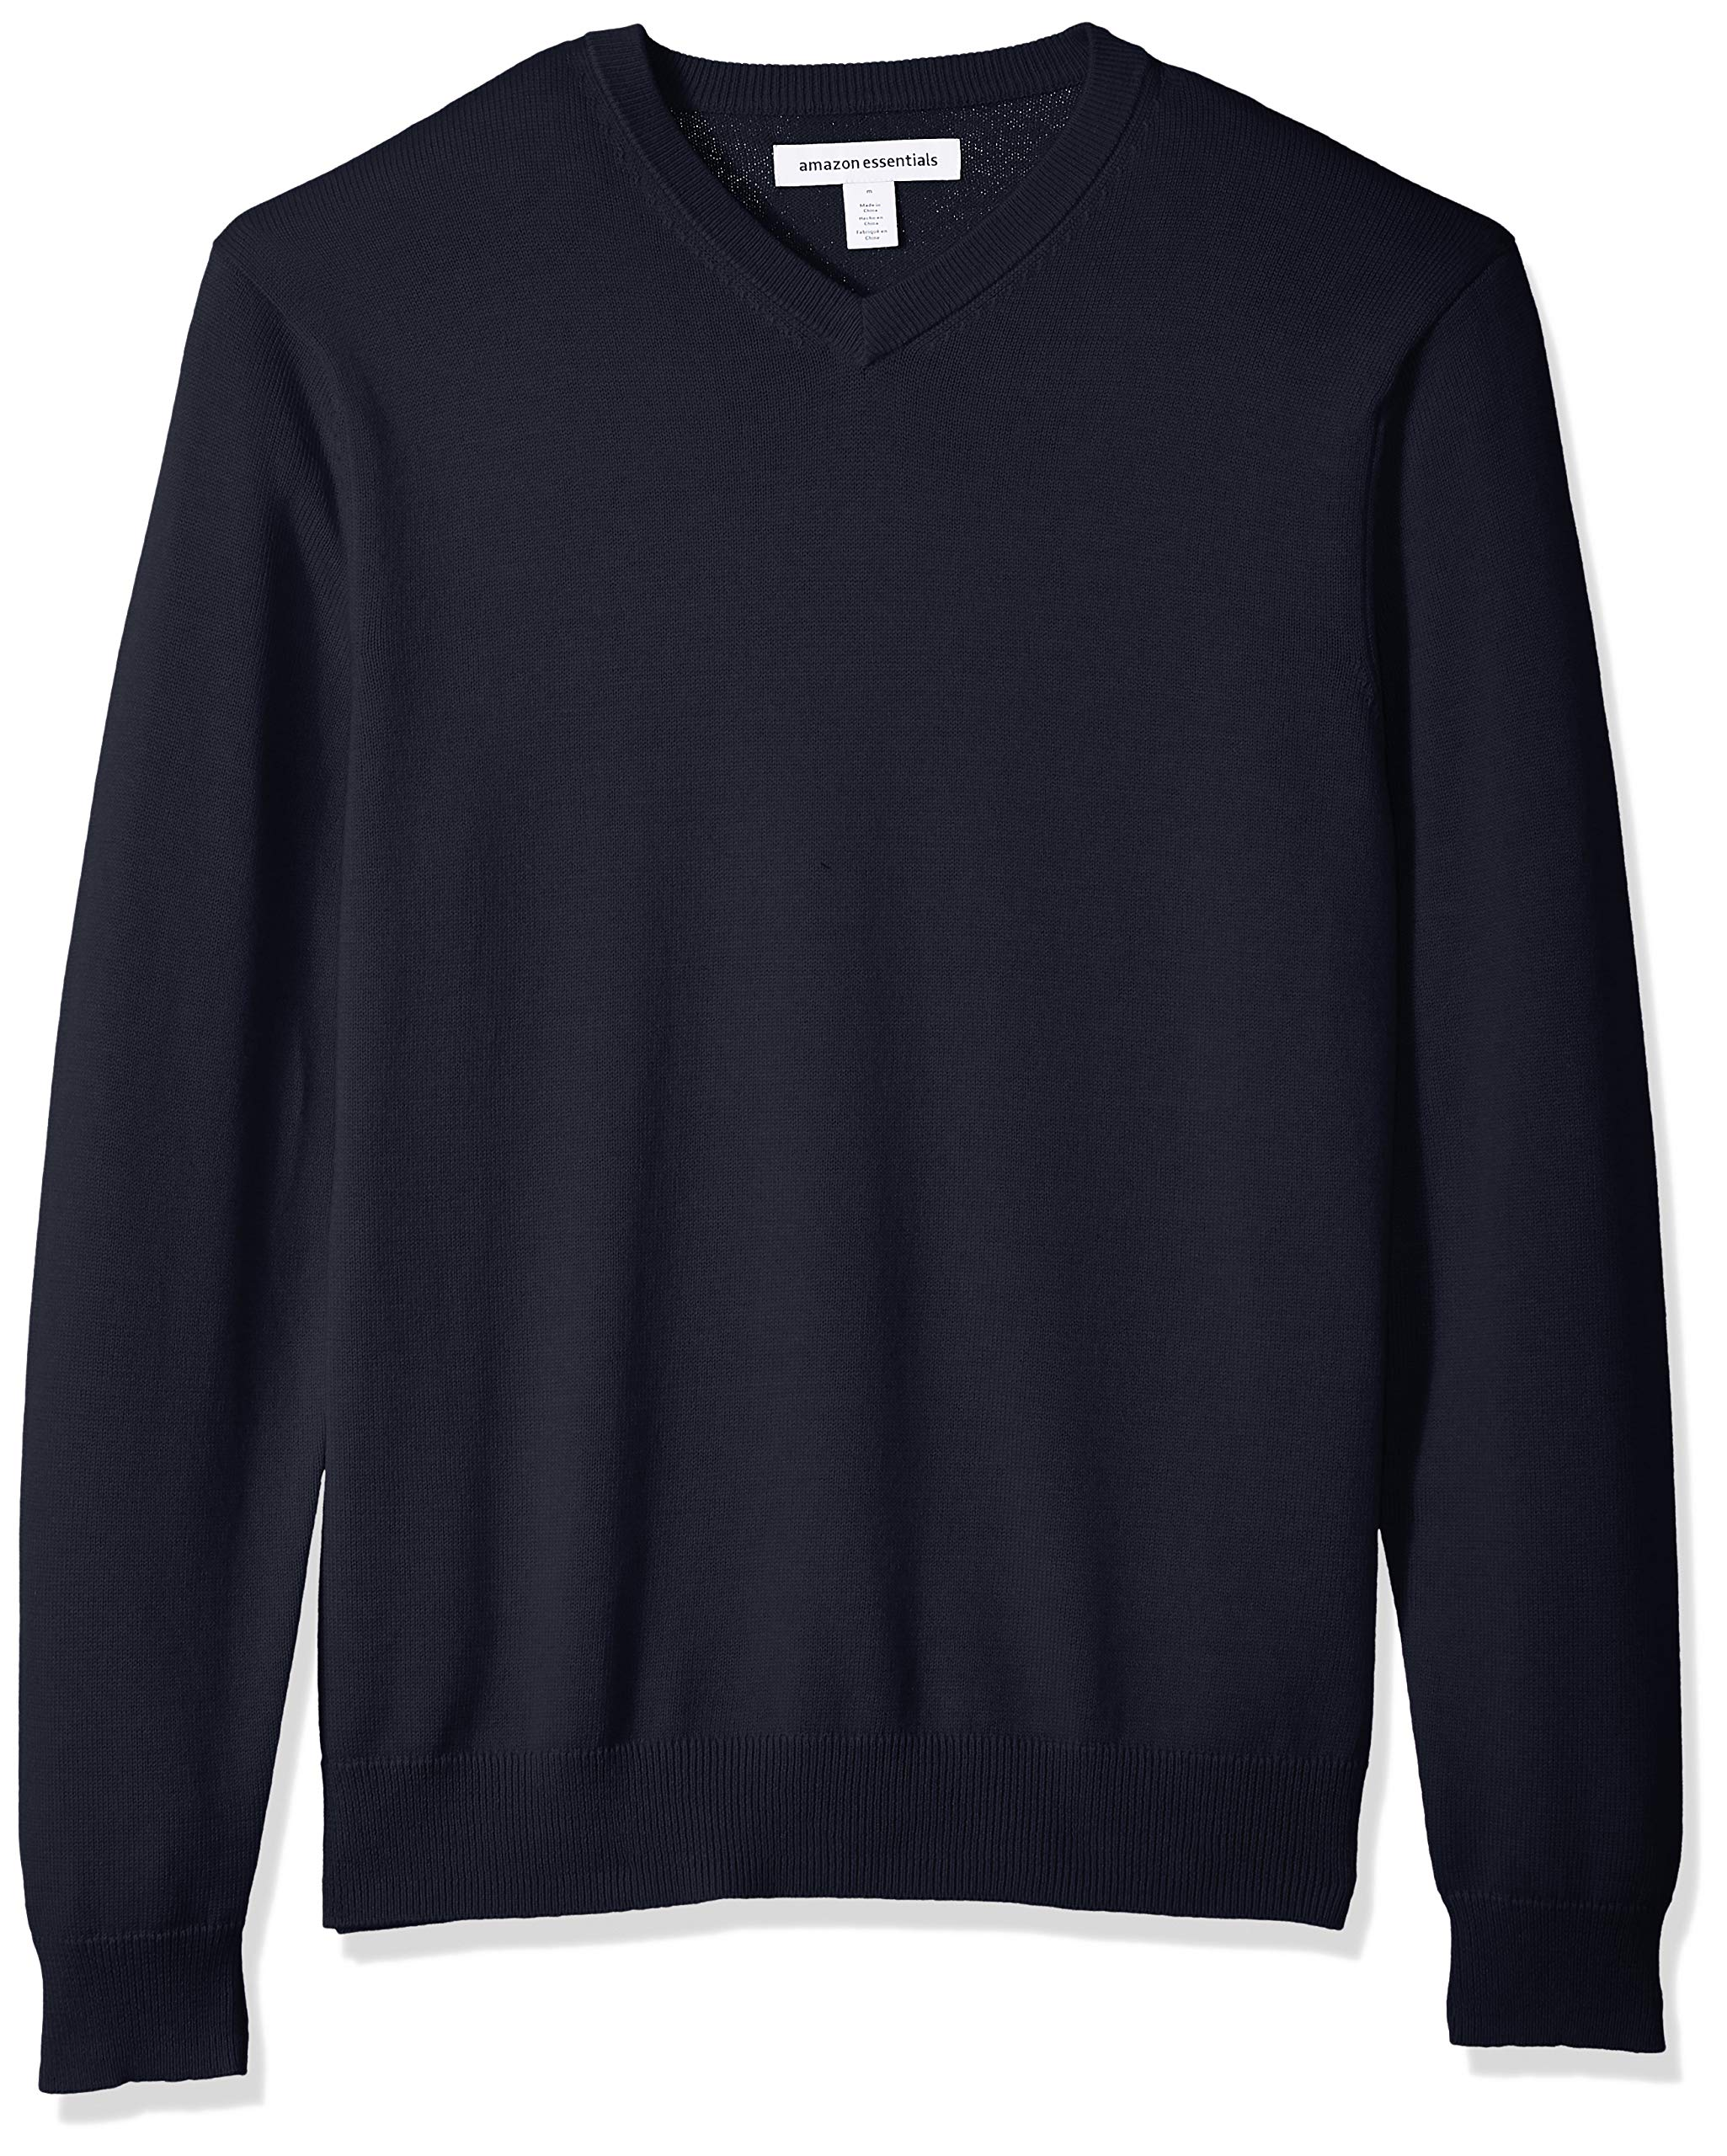 Amazon Essentials Men's V-Neck Sweater, Navy, Medium by Amazon Essentials